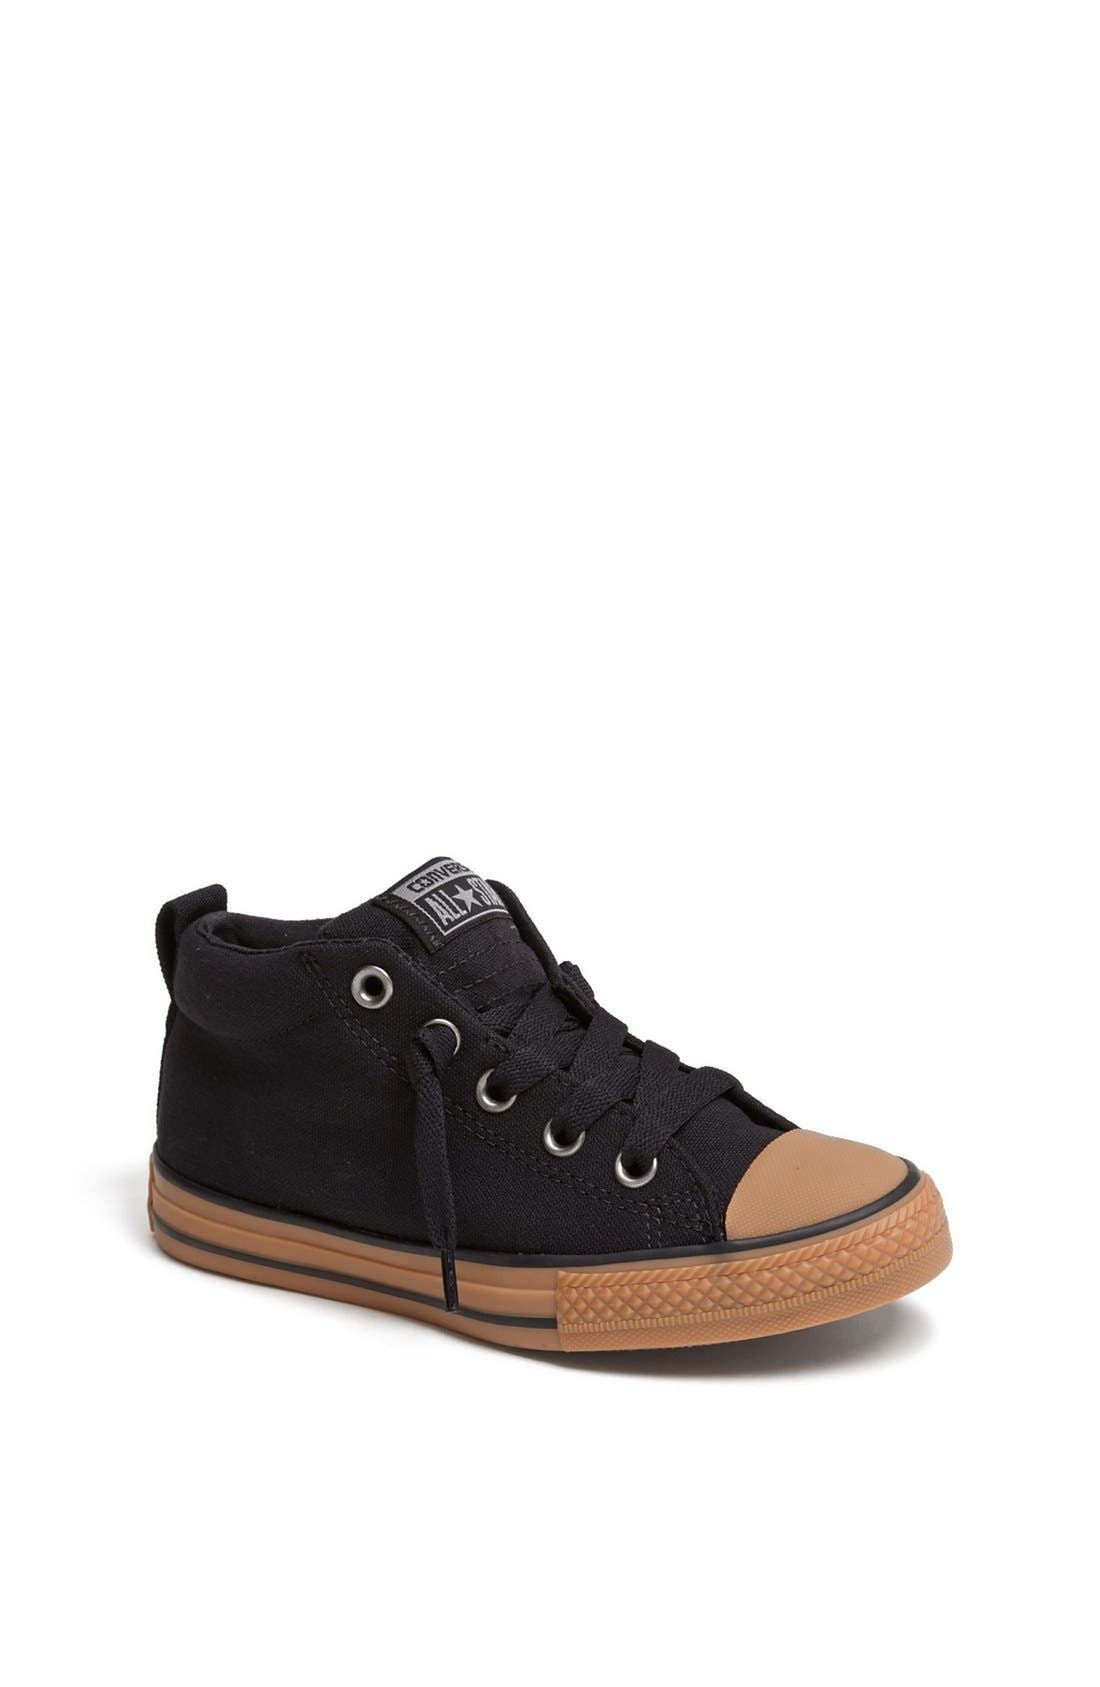 Alternate Image 1 Selected - CONVERSE STREET MID CAB SNEAKER